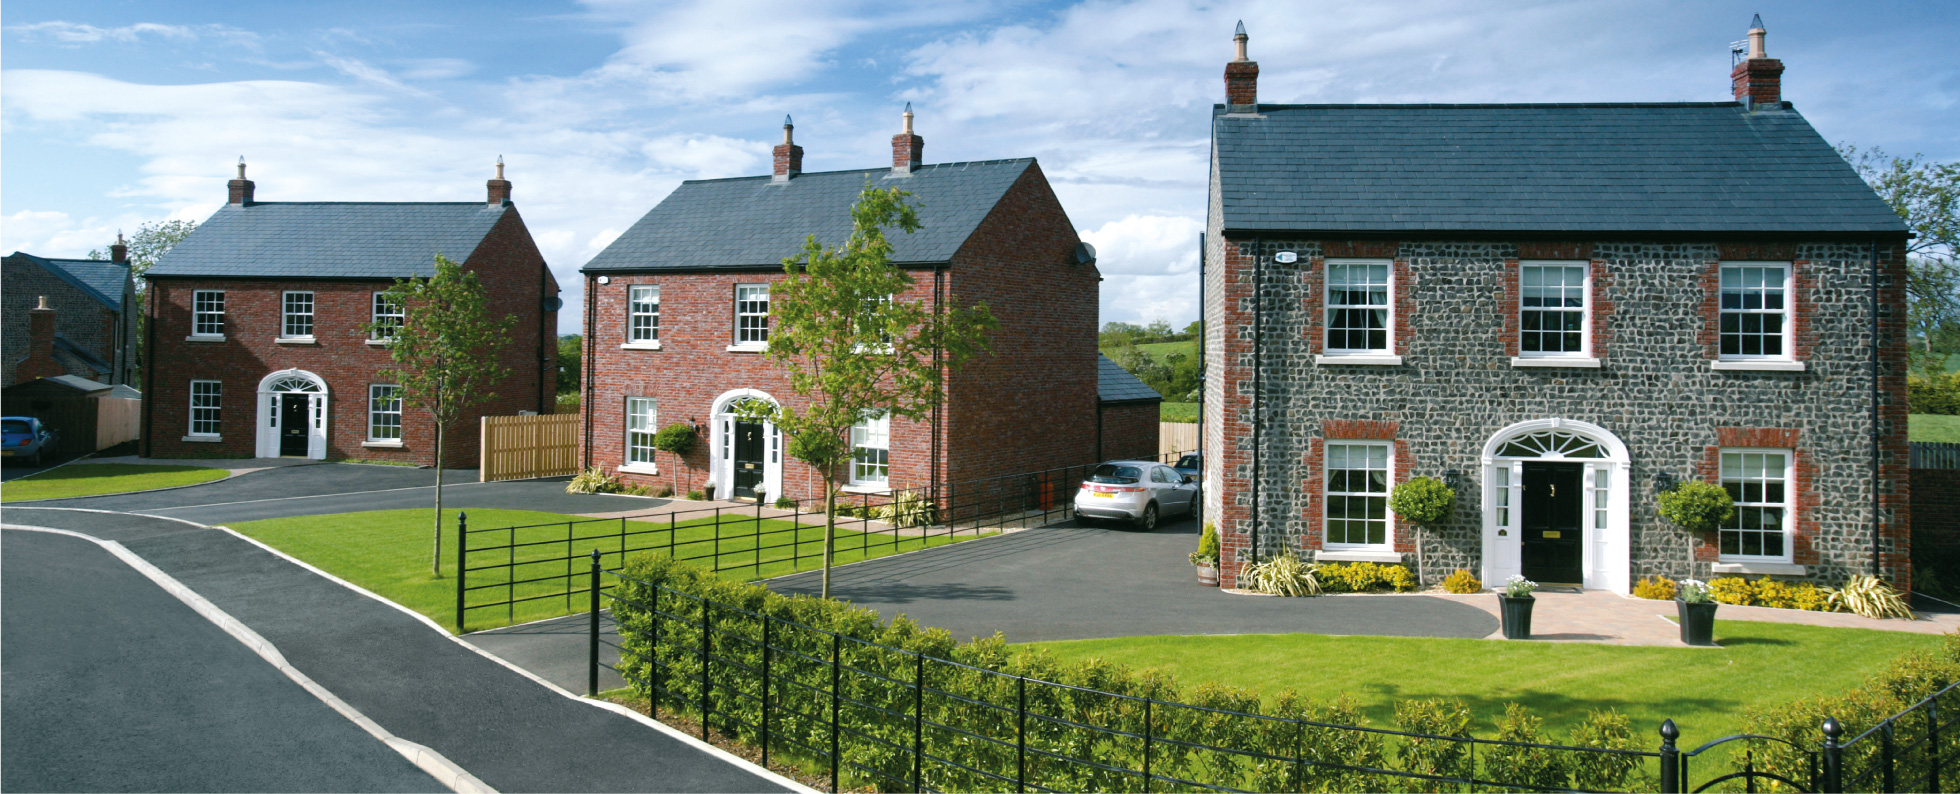 Porter & Co Homes :: New Homes Northern Ireland